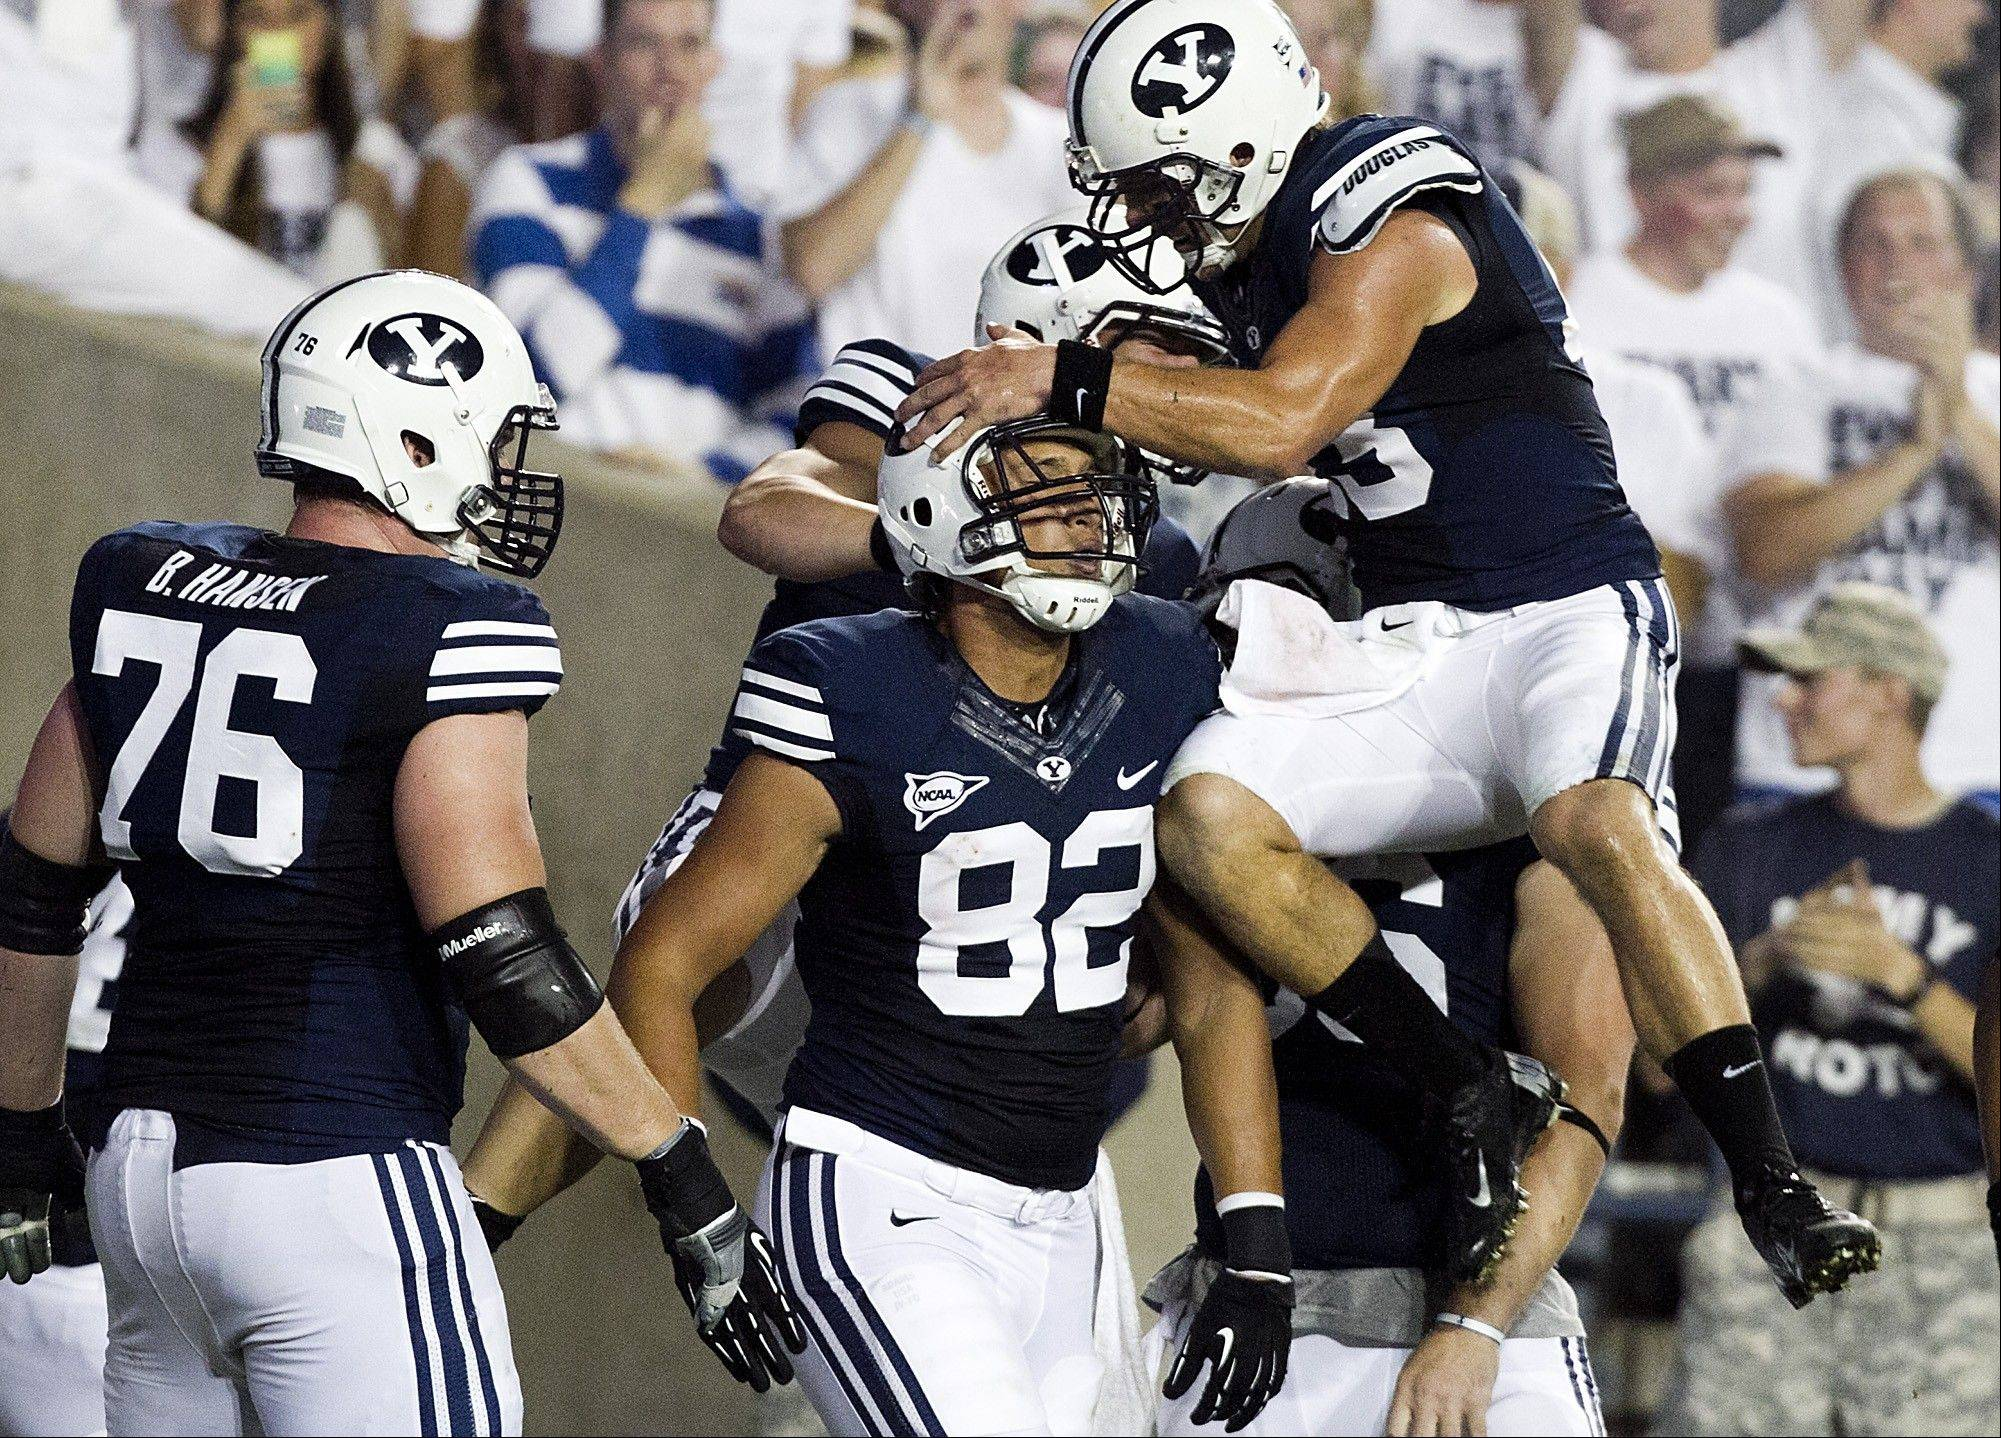 BYU�s Kaneakua Friel, center, is congratulated by quarterback Riley Nelson after a touchdown against Washington State on Thursday in Provo, Utah.